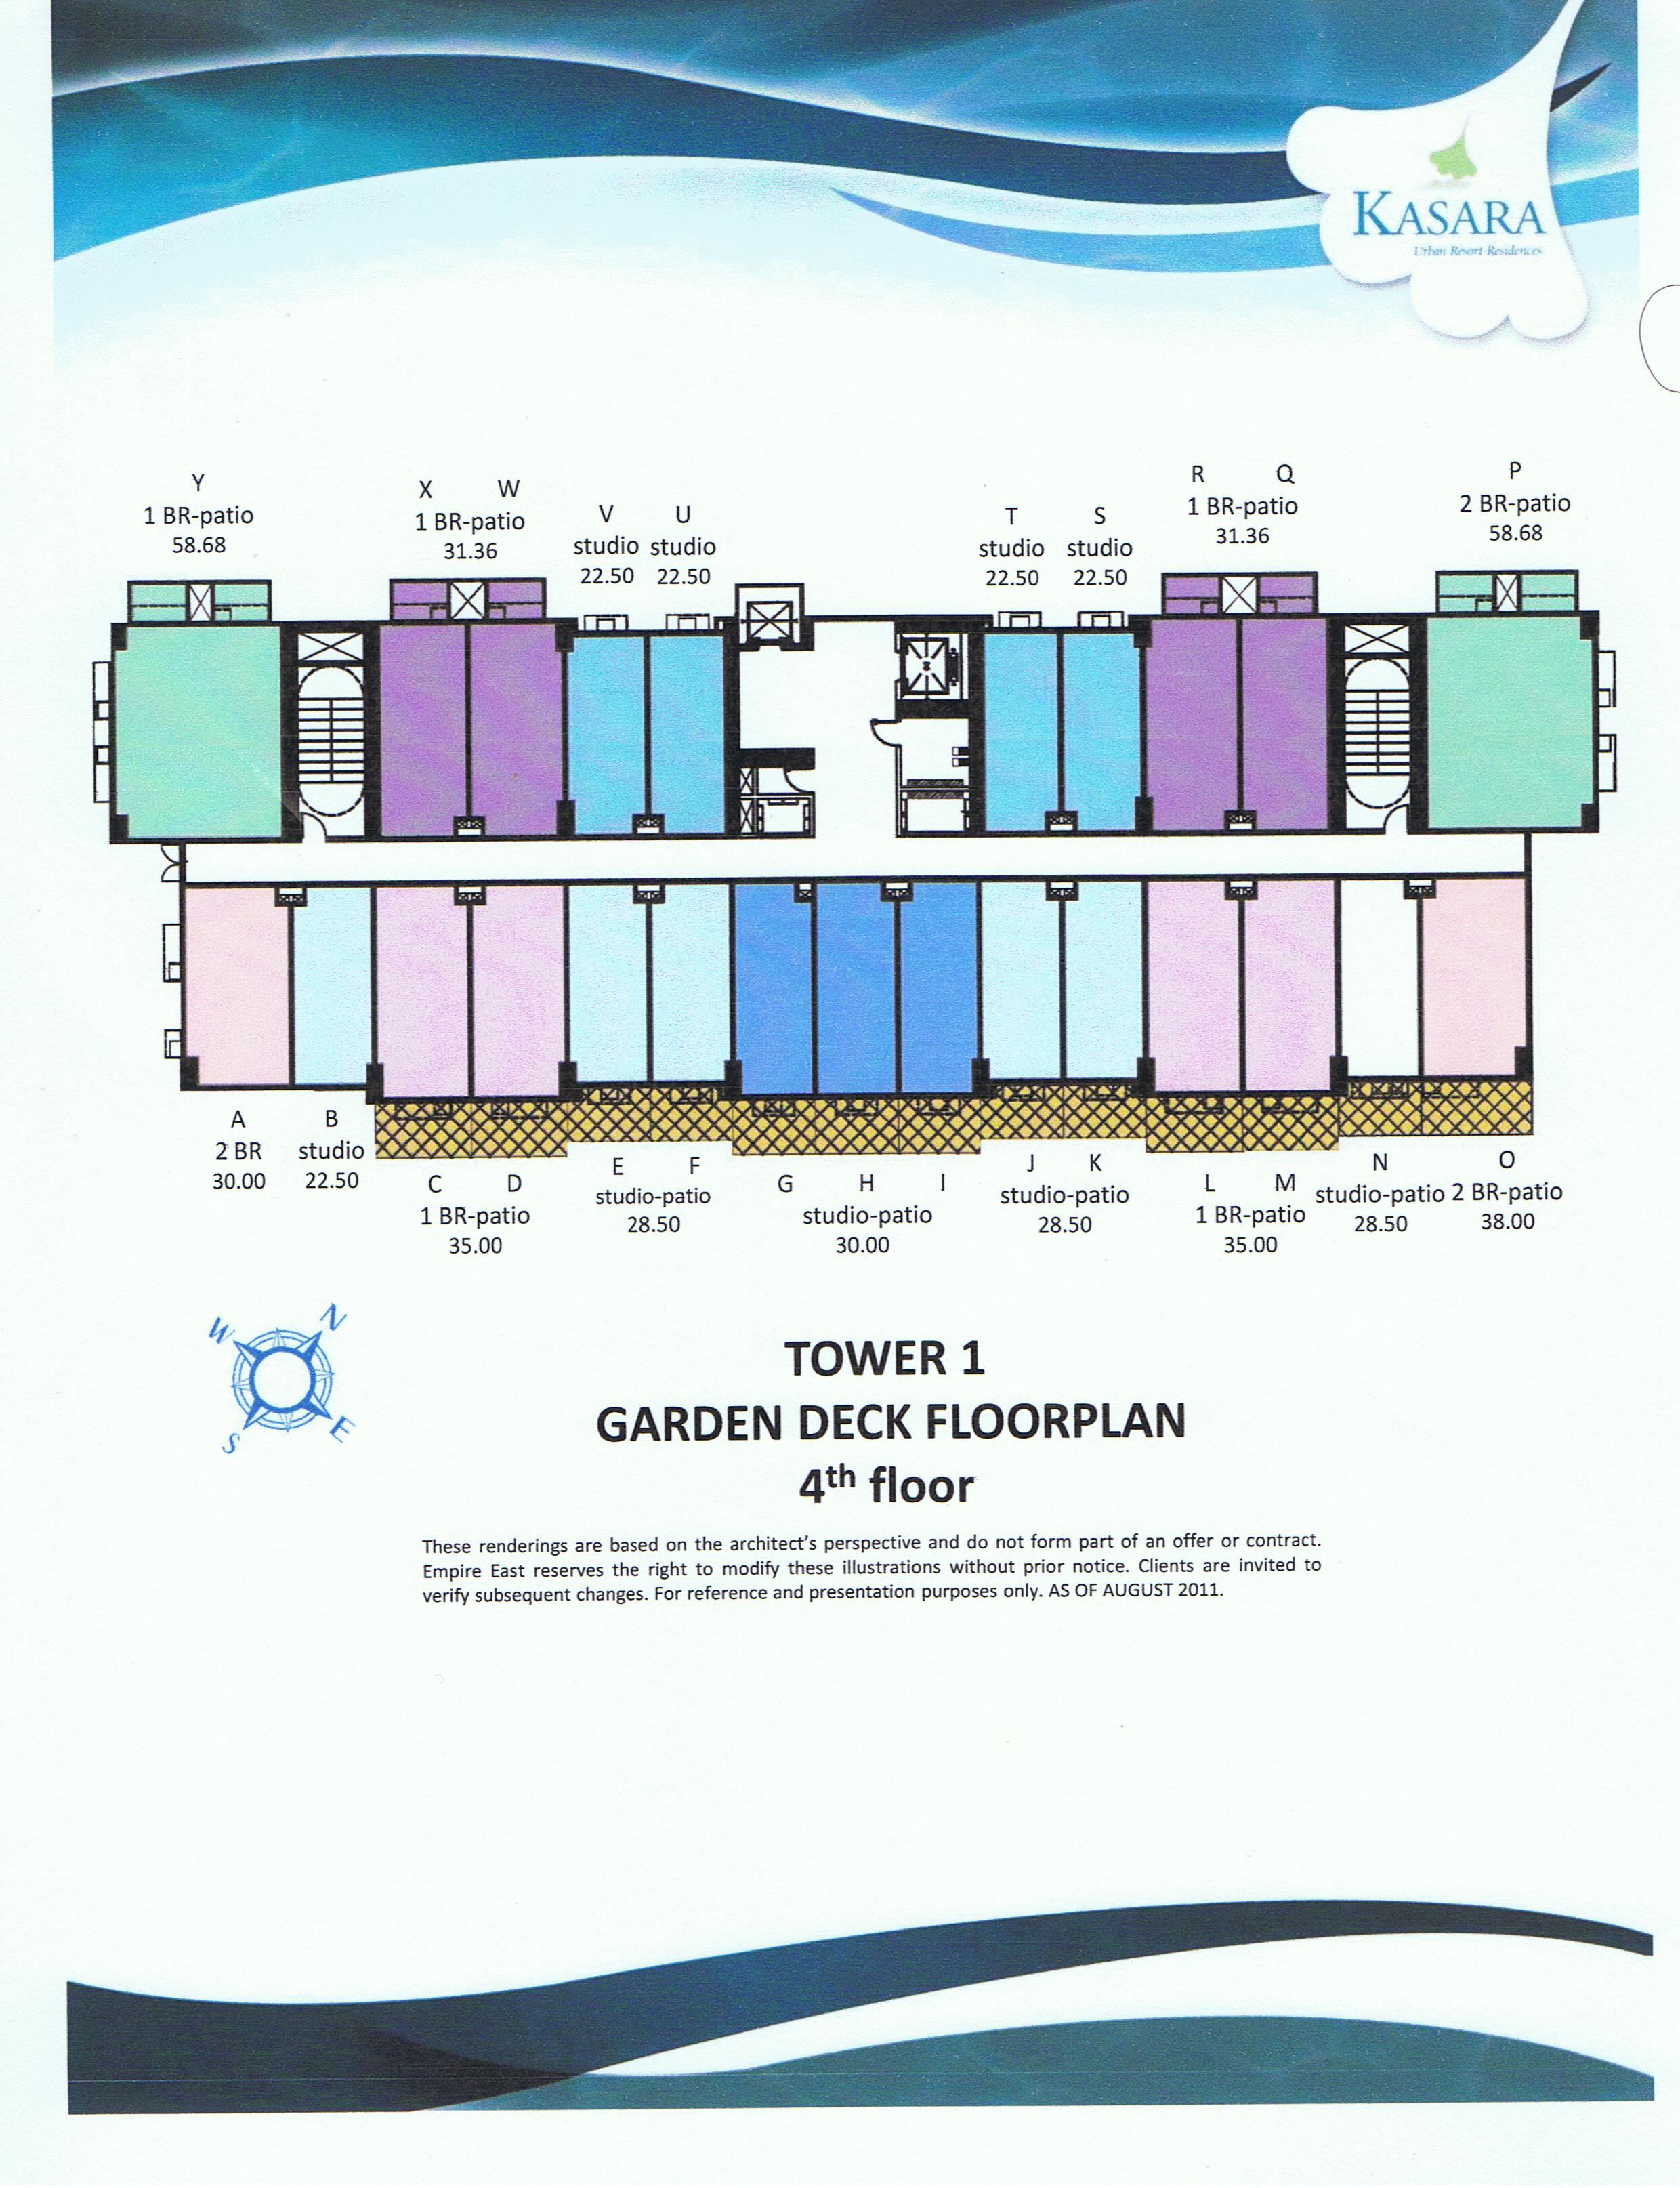 Floor Plan with Garden Deck - Tower 1